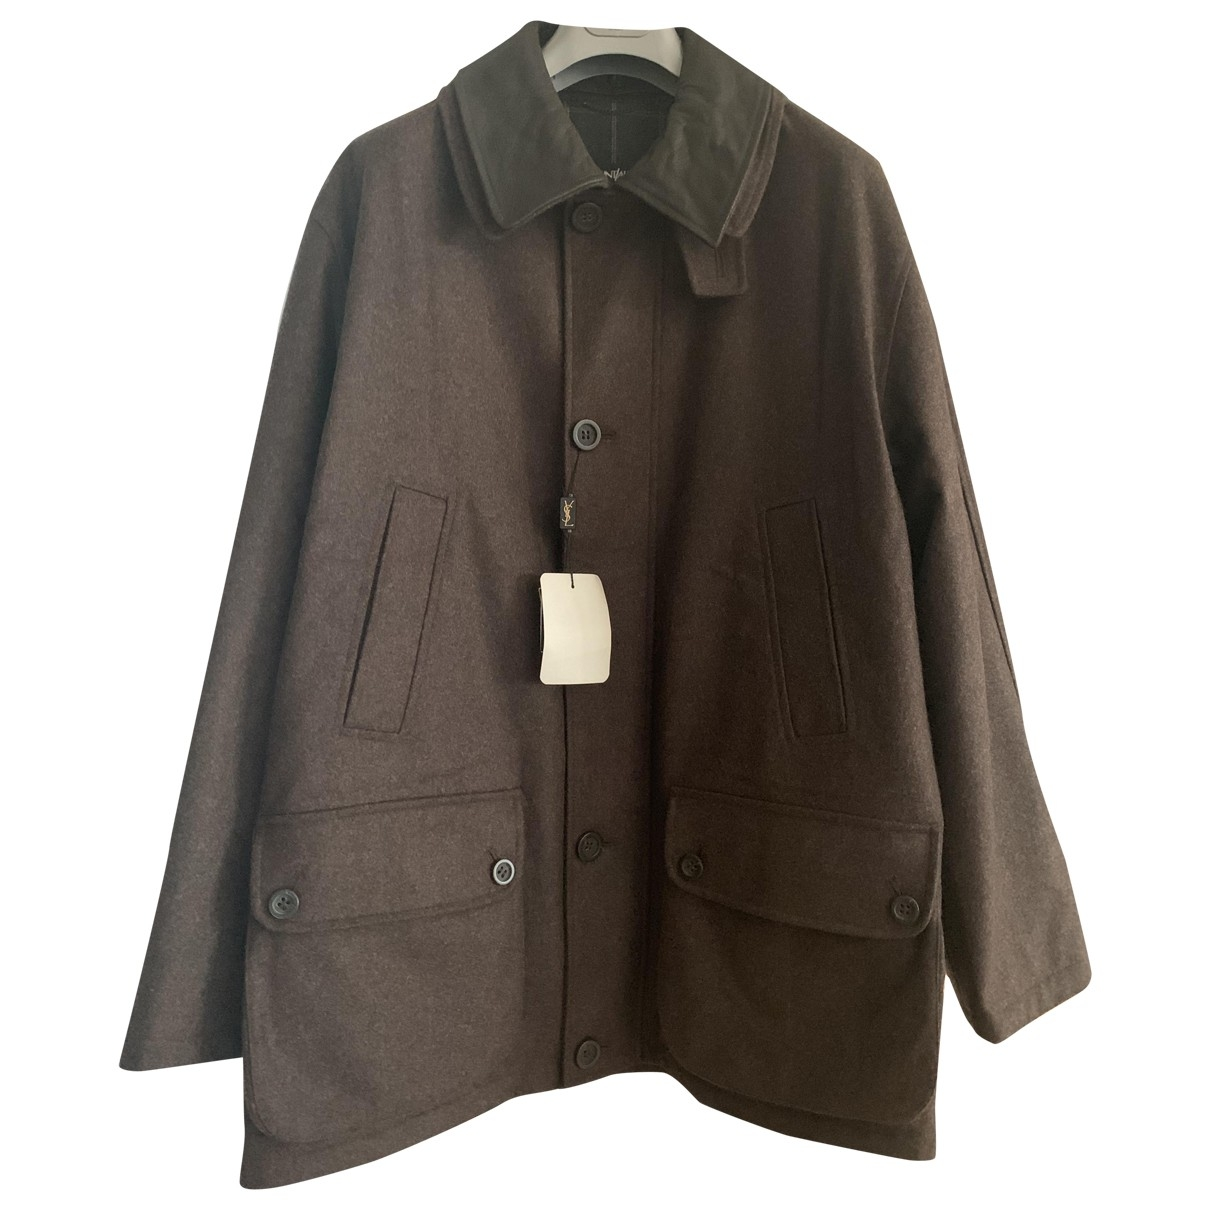 Yves Saint Laurent - Manteau   pour homme en laine - marron